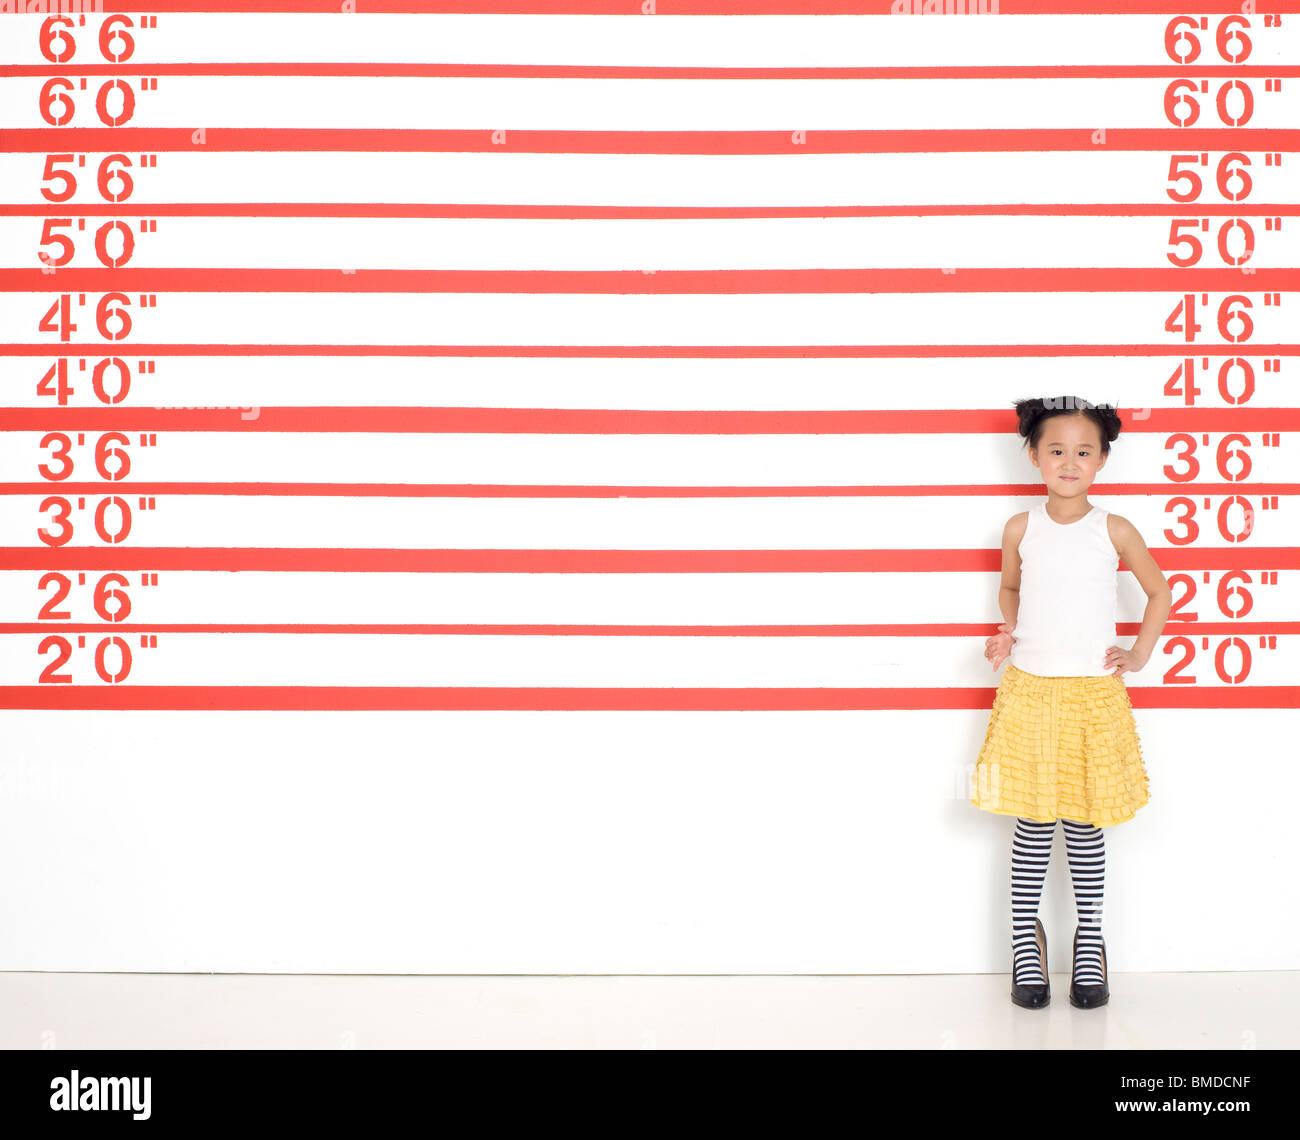 Girl in high heels by growth chart - Stock Image